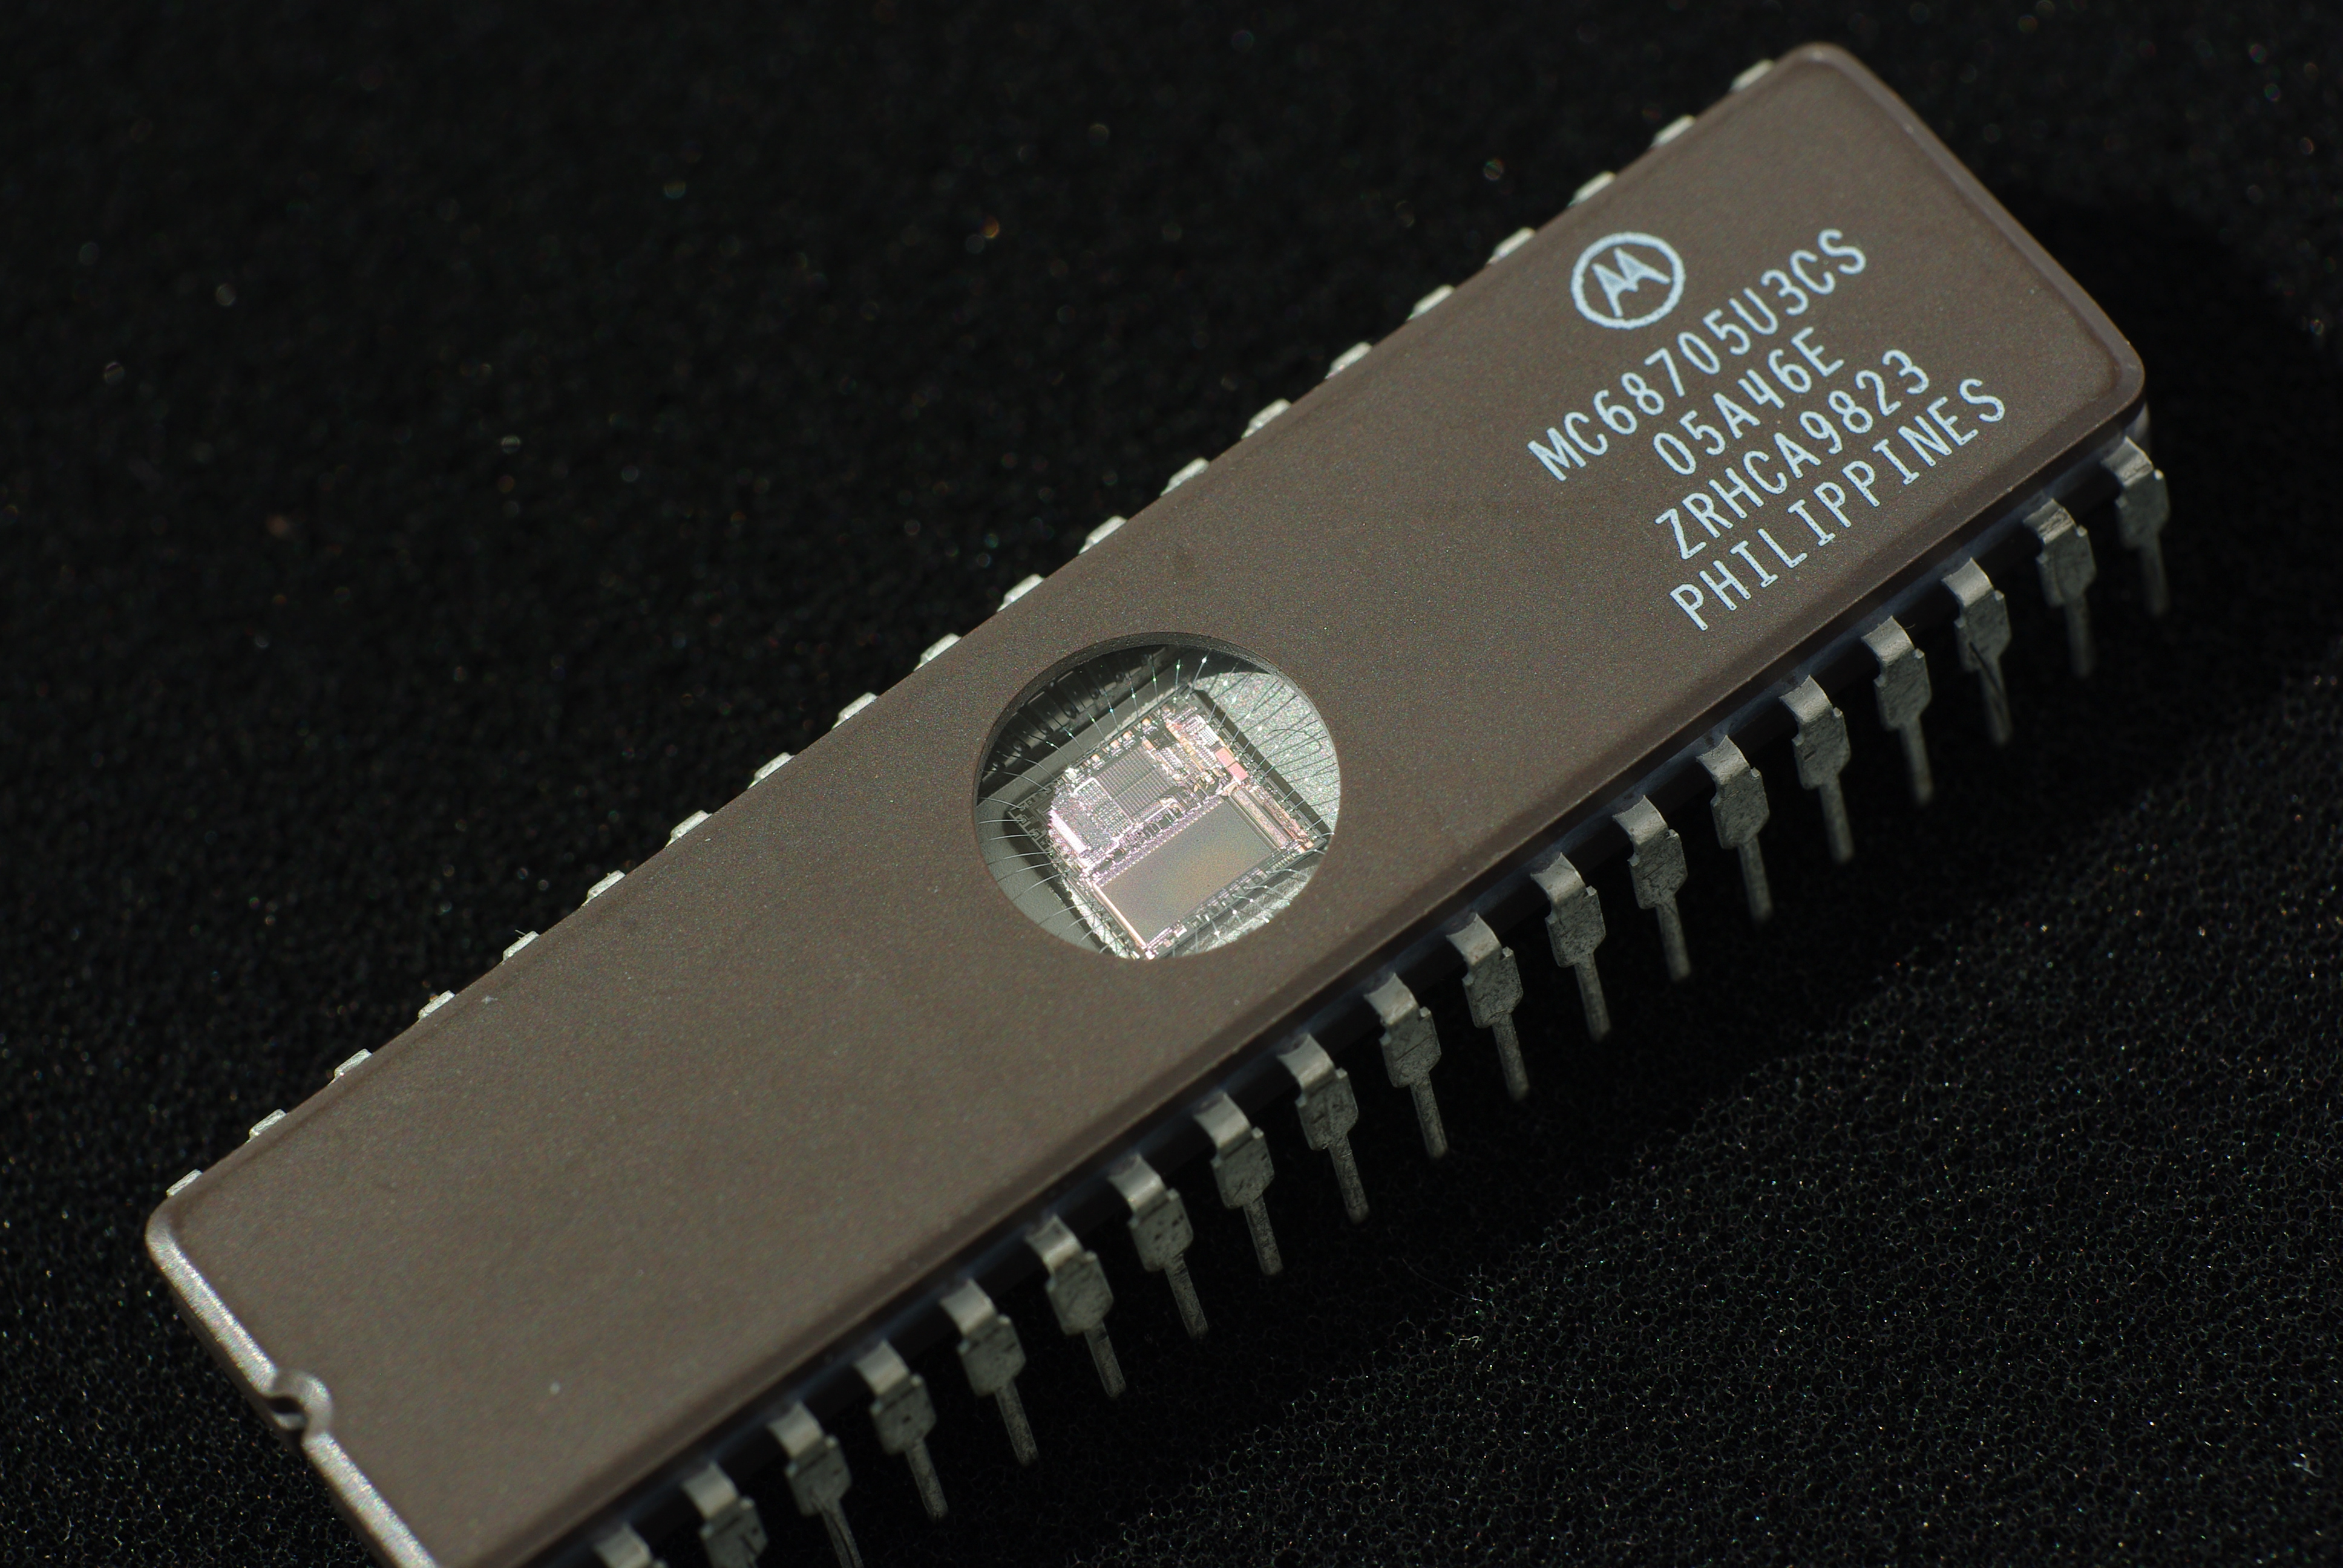 EPROM chip - notice the clear glass where you can shine UV light through to erase the memory!